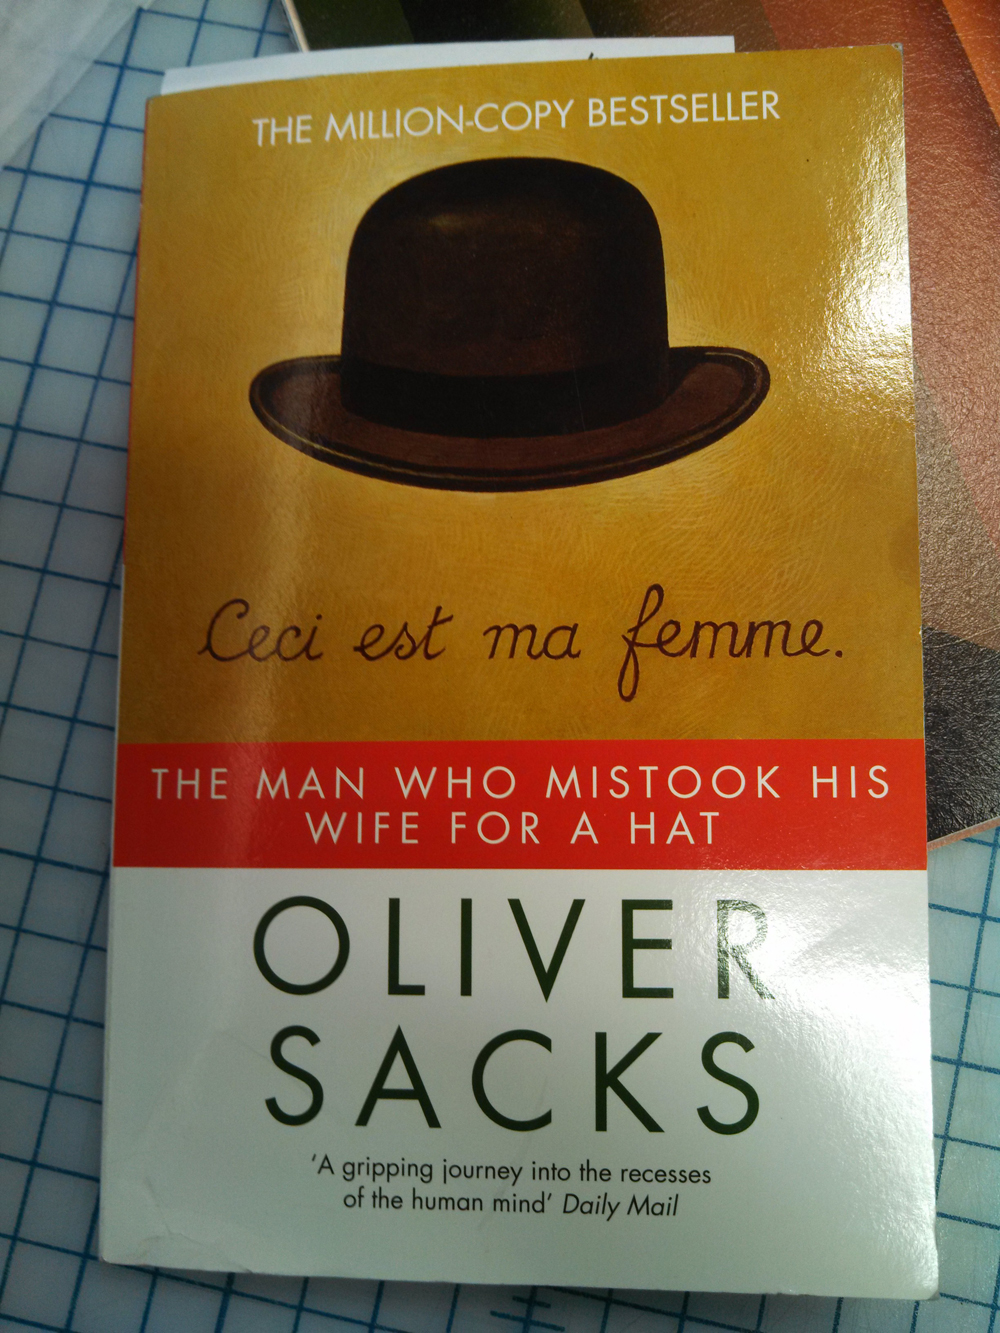 an analysis of man who mistook his wife for hat by oliver sacks The man who mistook his wife for a hat: oliver sacks/key takeaways, analysis & review by instaread is a summary of the 30th anniversary edition of dr.